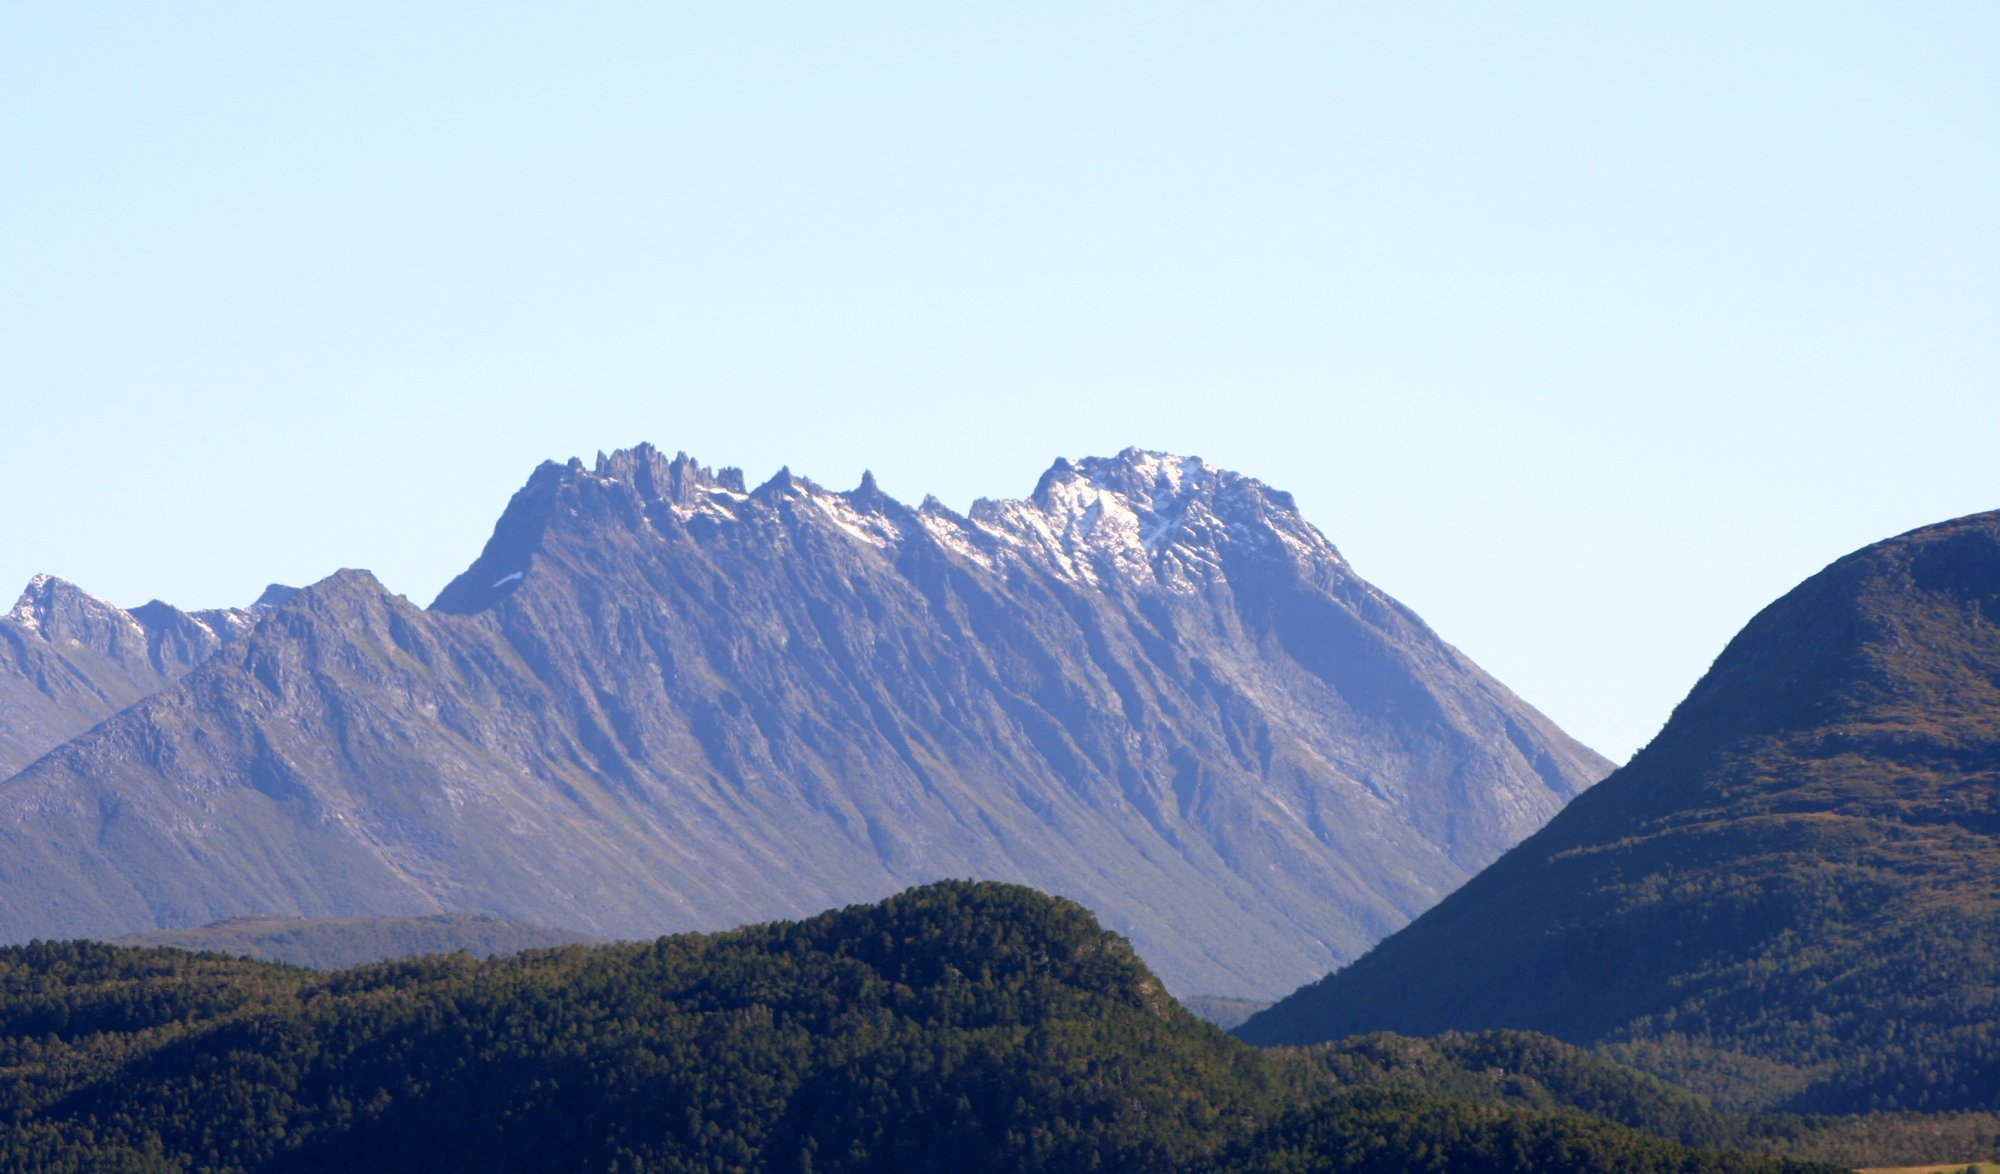 File:Mountain view from home3.jpg - Wikimedia Commons